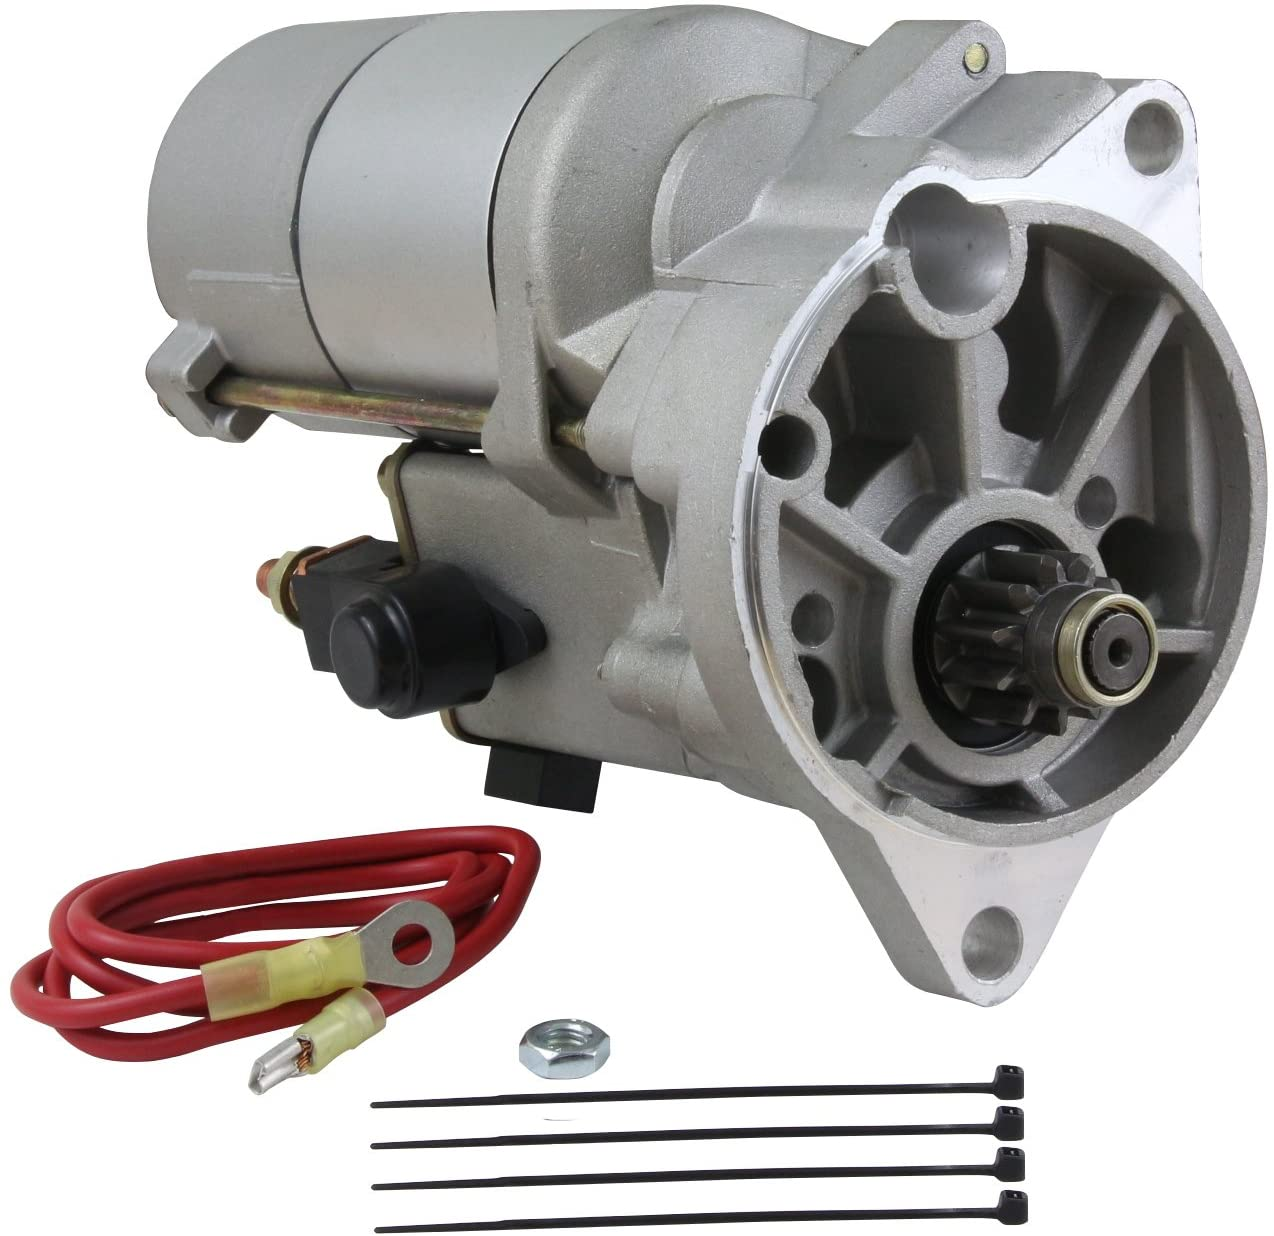 Rareelectrical NEW HIGH TORQUE GEAR REDUCTION STARTER COMPATIBLE WITH MERCURY COUGAR V8 D2AF-11001-CA